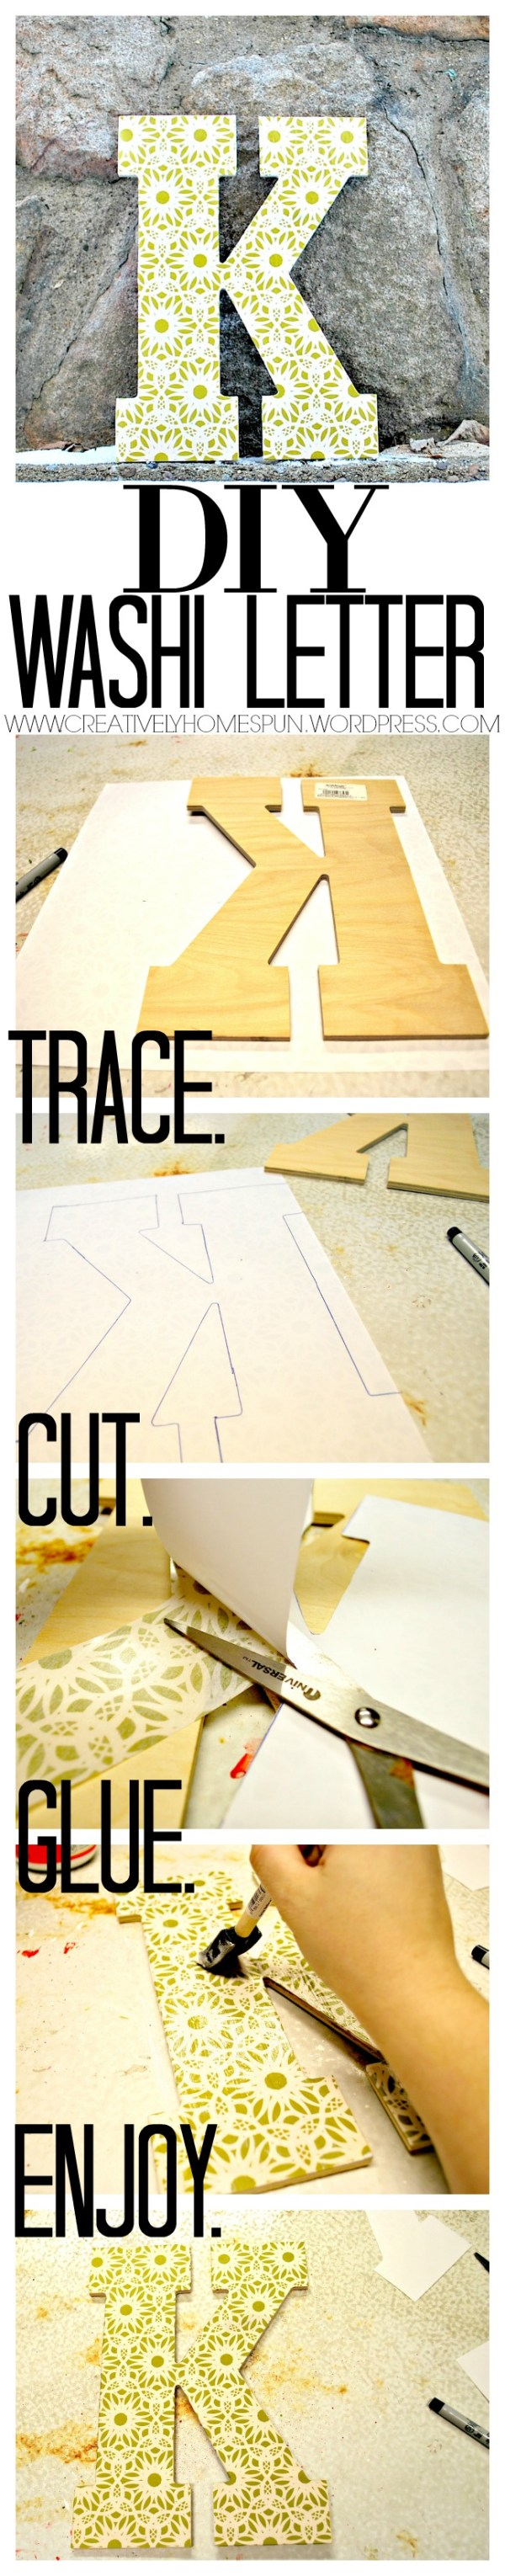 DIY Washi Letter #easycraft #kitchendecor #diydecor #green #washi